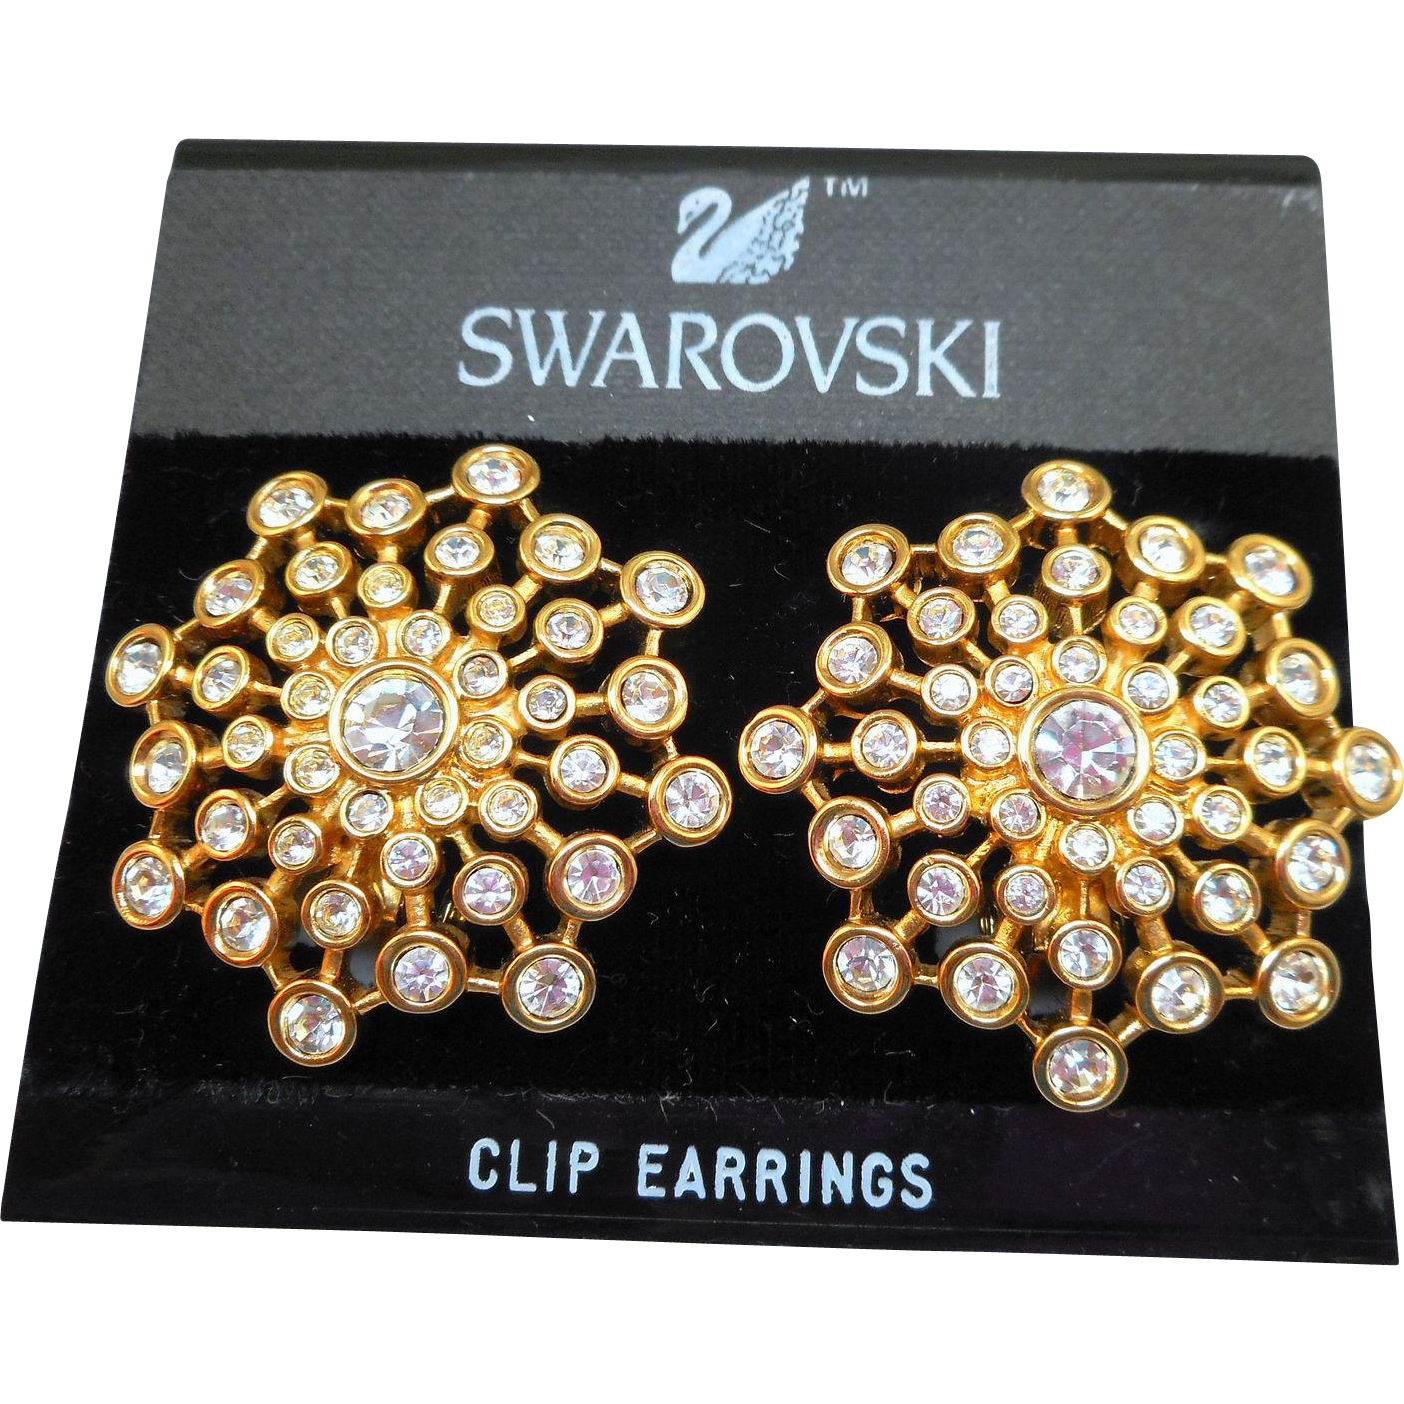 Swarovski Runway Earrings